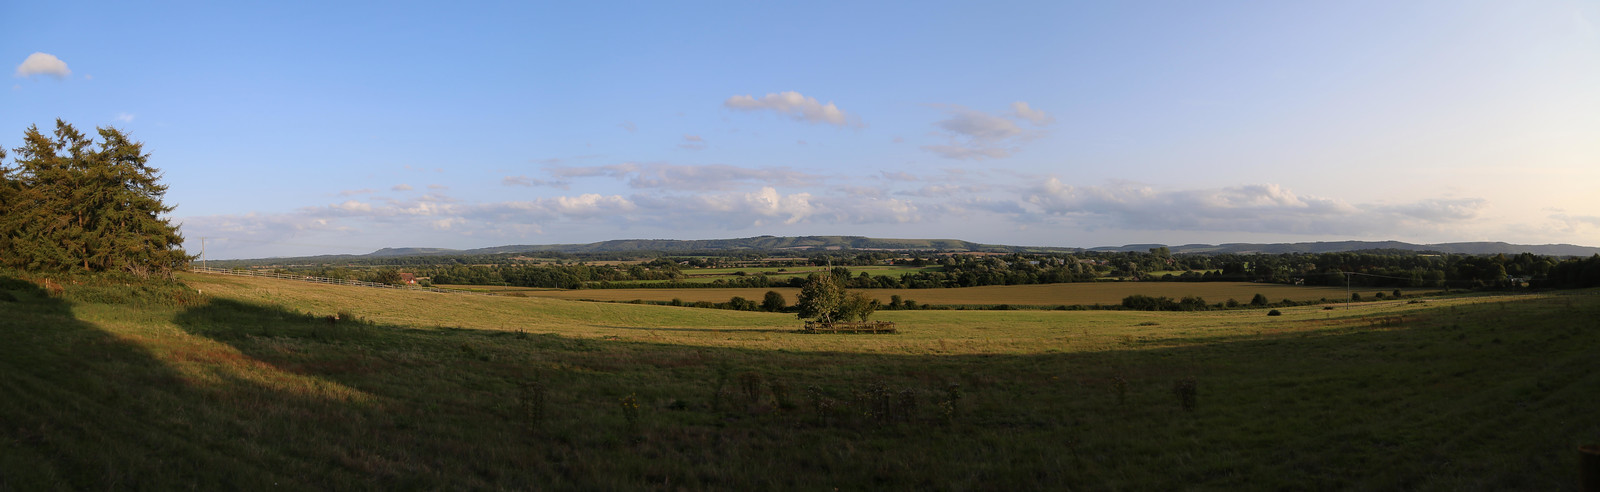 Looking to South Downs near Pulborough